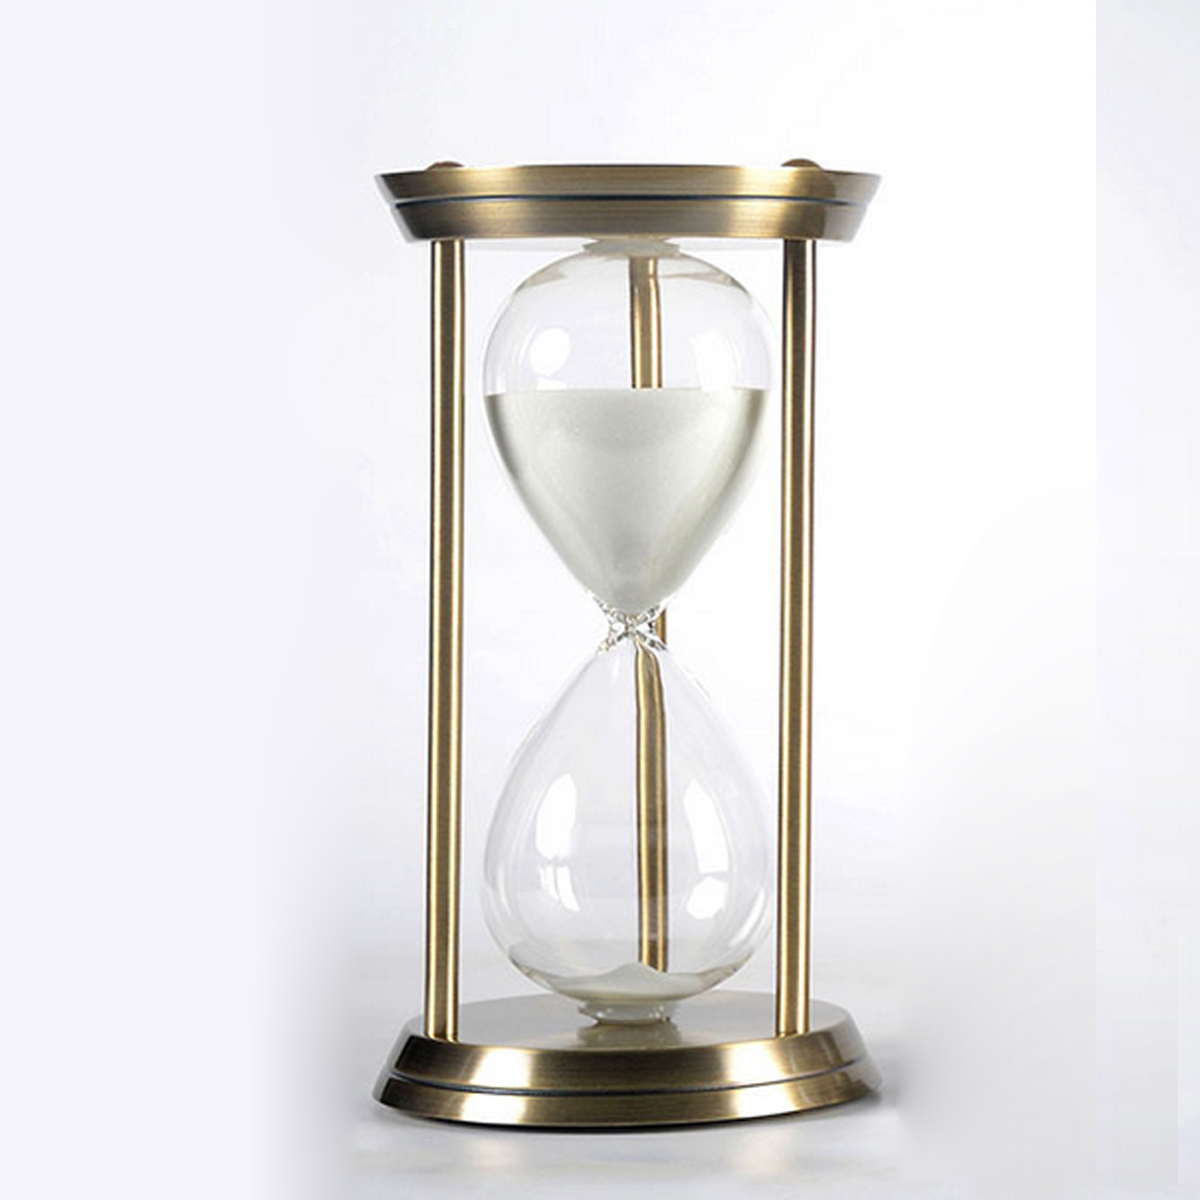 Metal Hourglass Timer Decoration Creative Birthday Business Gift Gold 15 Minutes